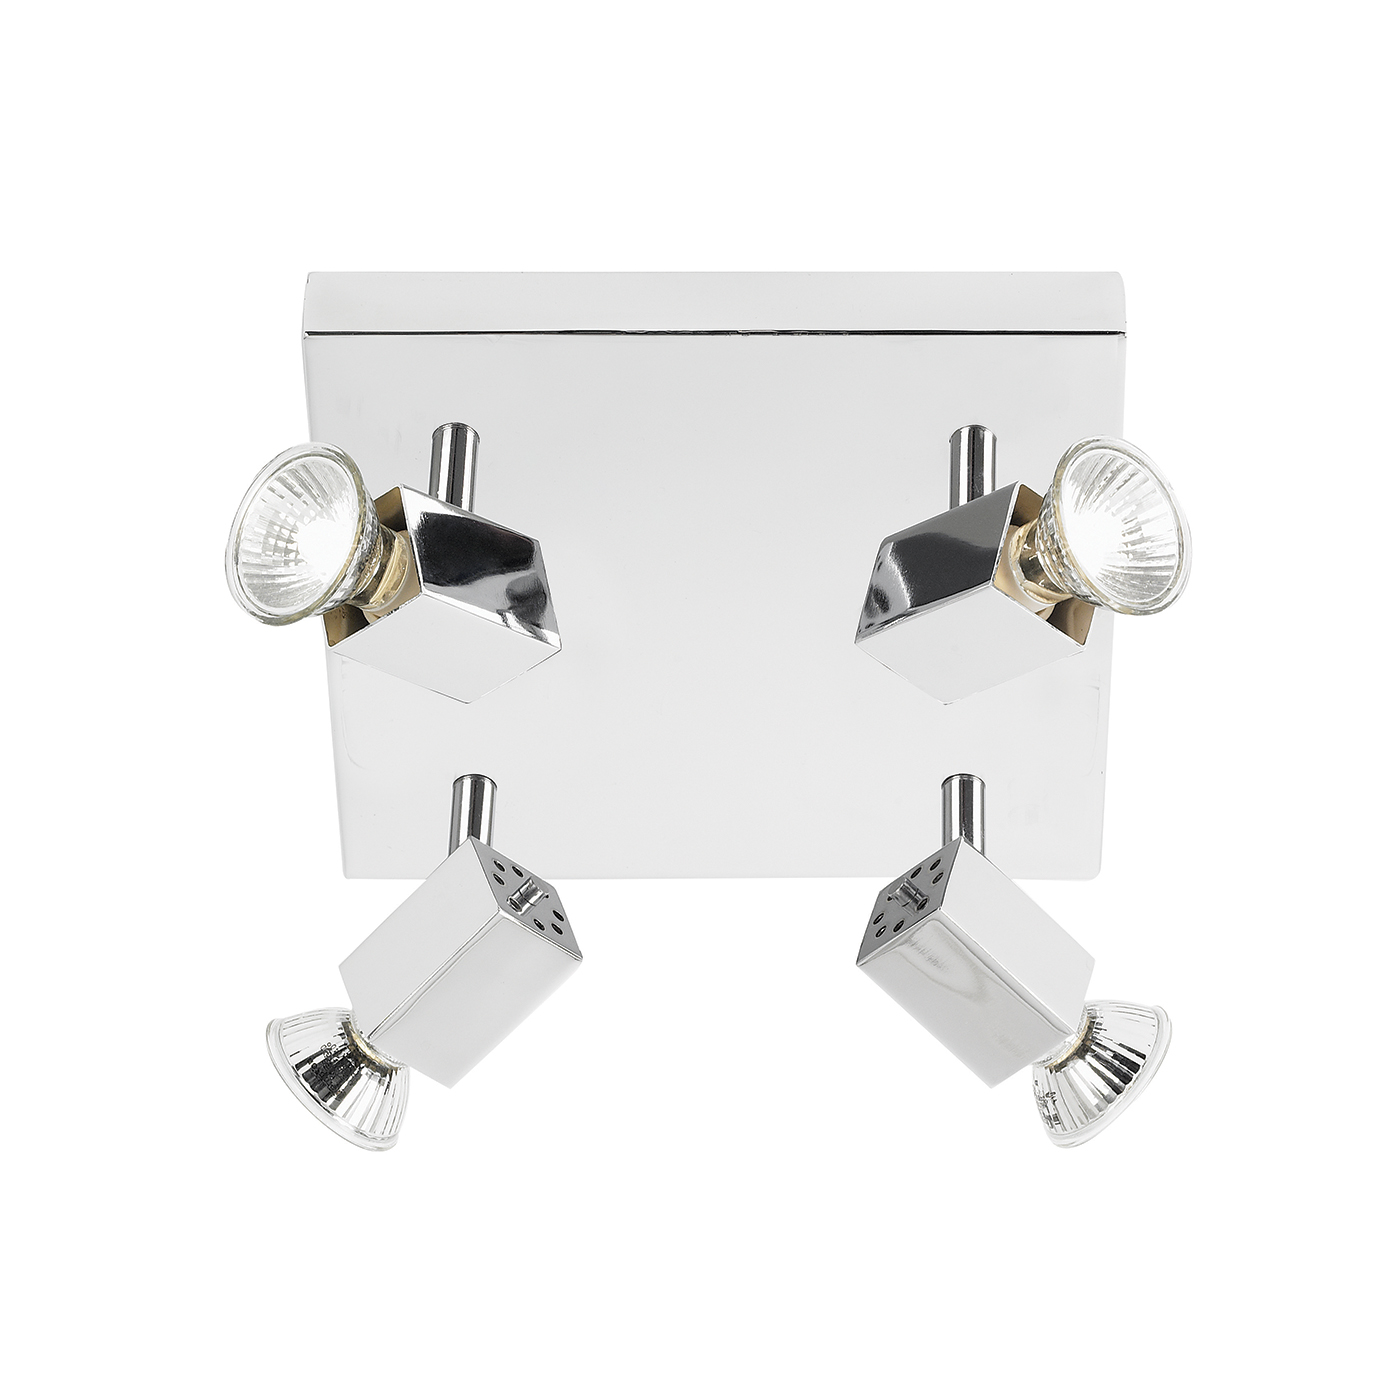 Endon Grove ceiling spotlight square 4x 50W Chrome effect plate Thumbnail 1